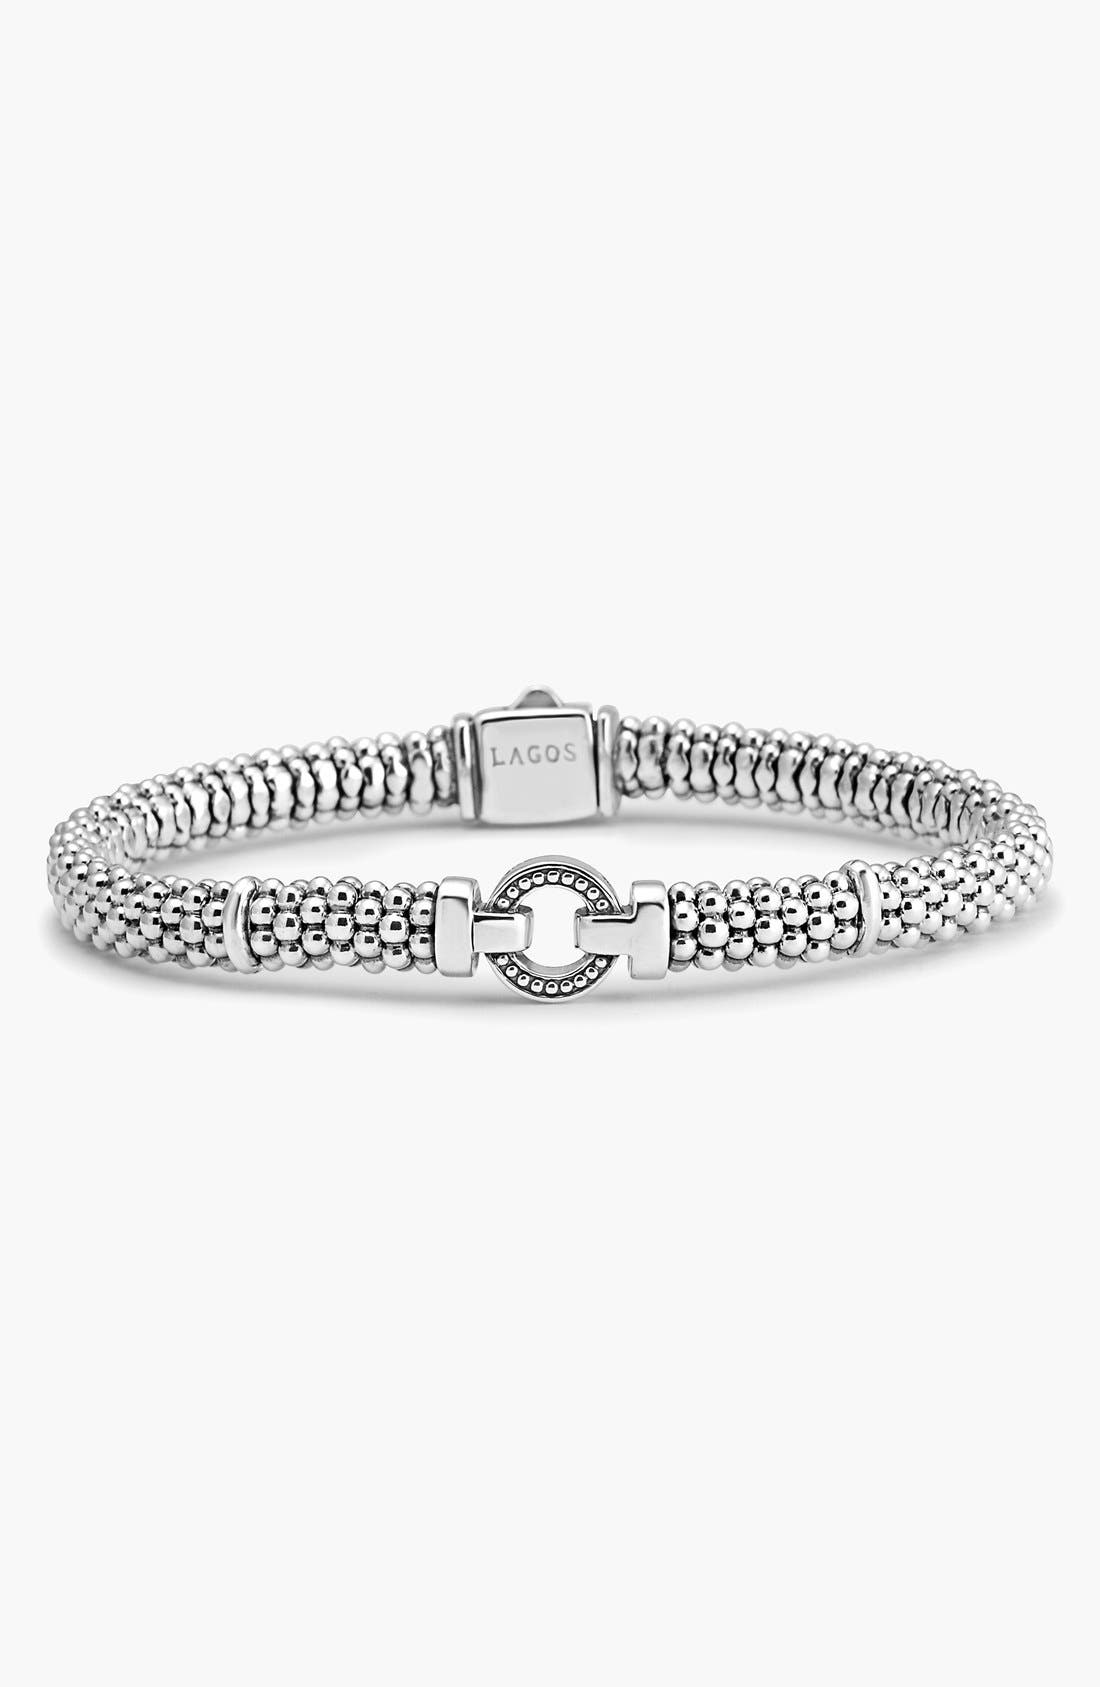 LAGOS, Enso Boxed Circle Station Caviar Rope Bracelet, Alternate thumbnail 8, color, STERLING SILVER